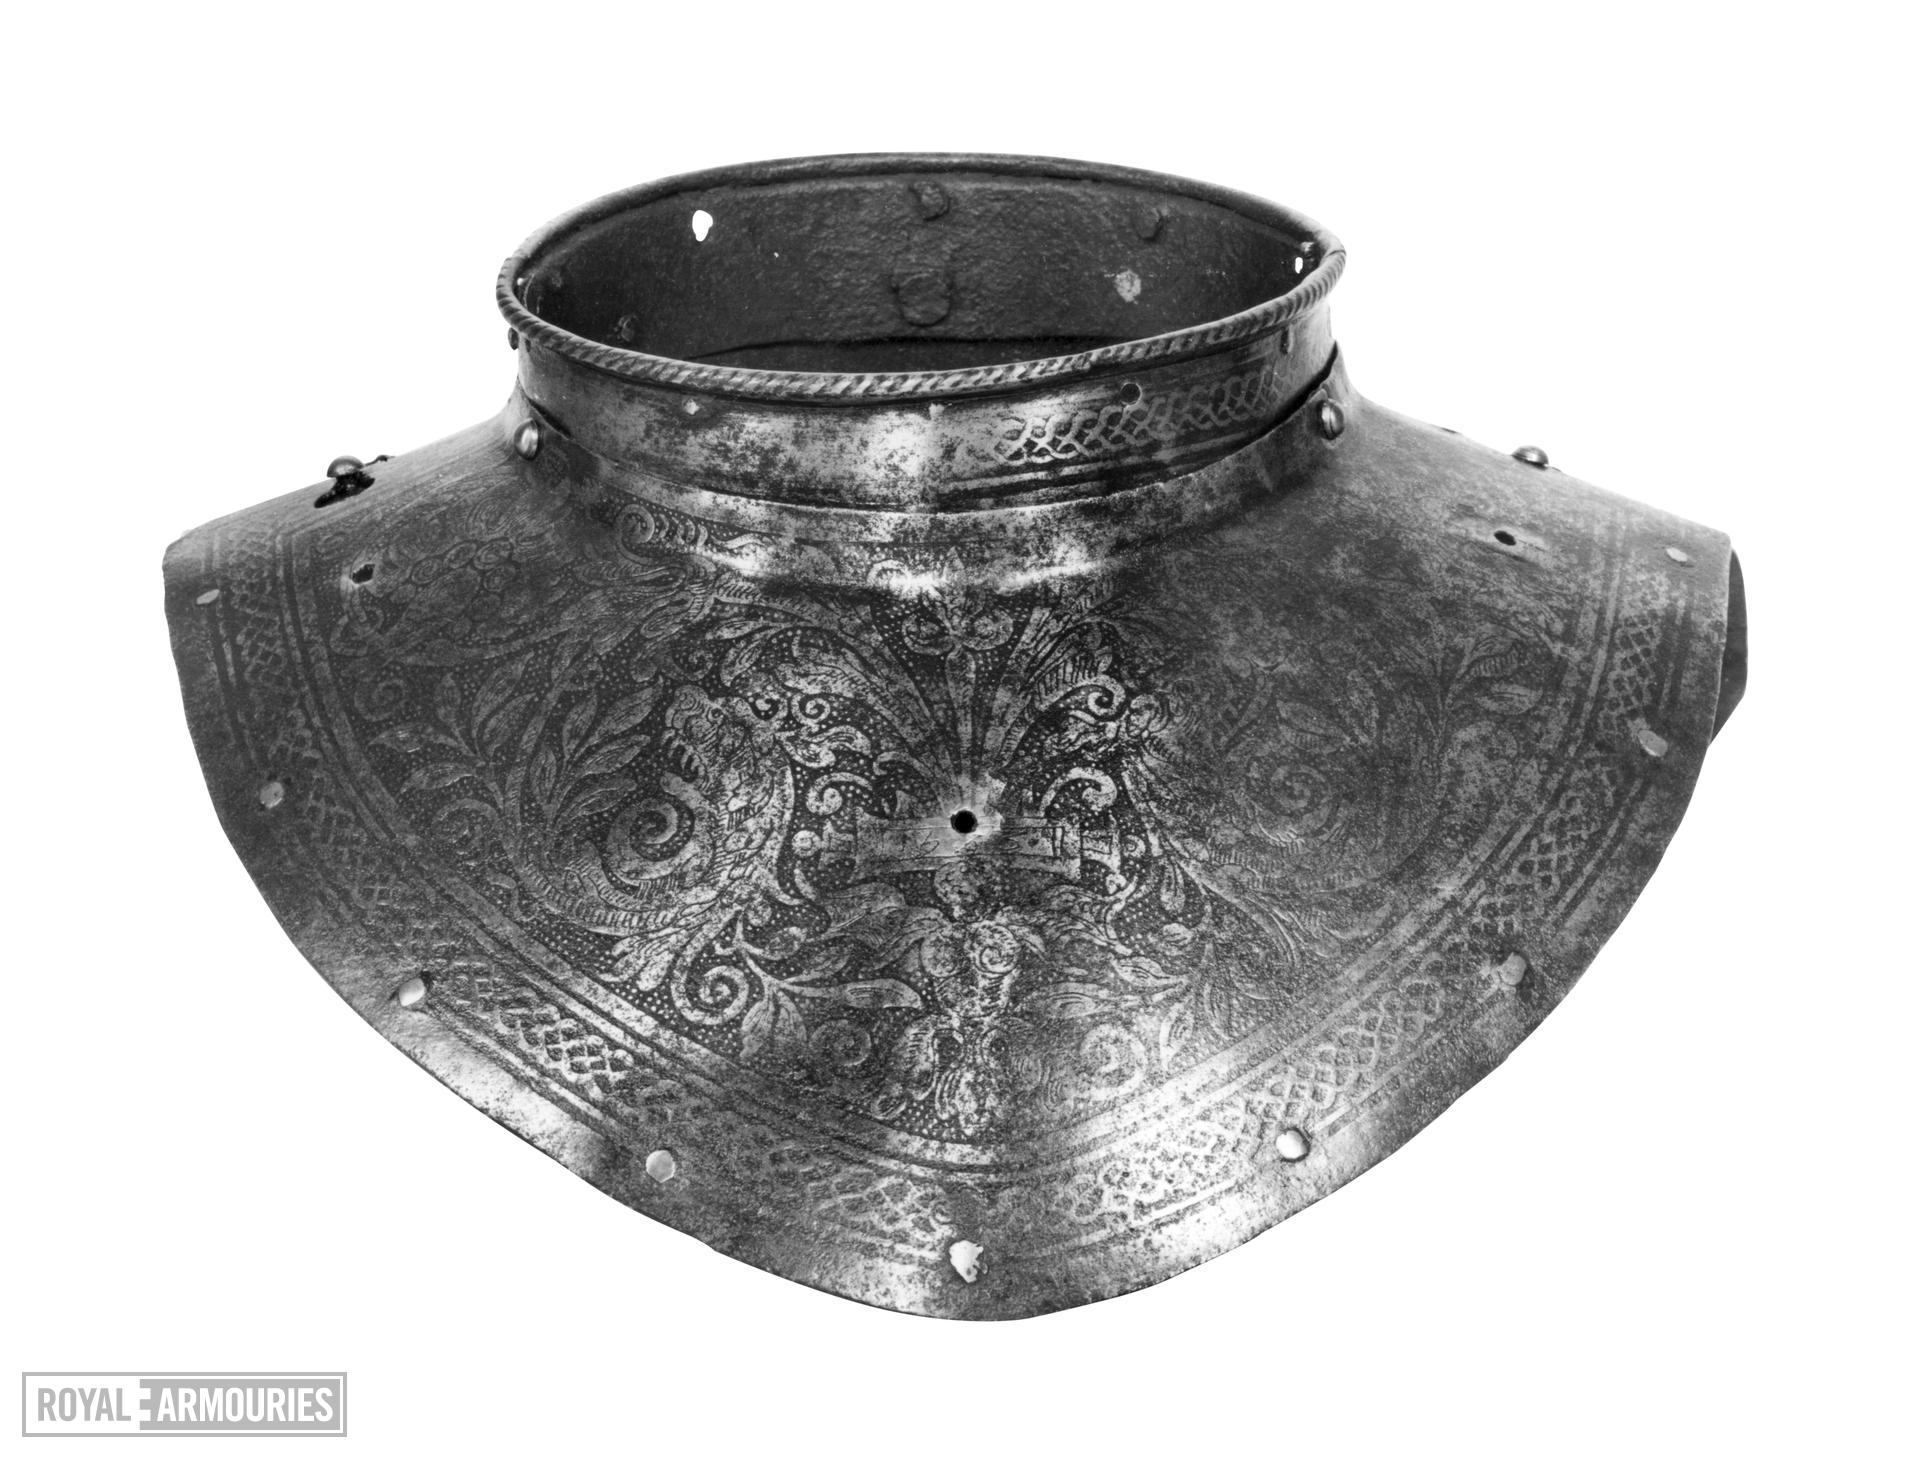 Gorget. Flemish, dated 1583. Made by Adrian Collaert (III.1692)